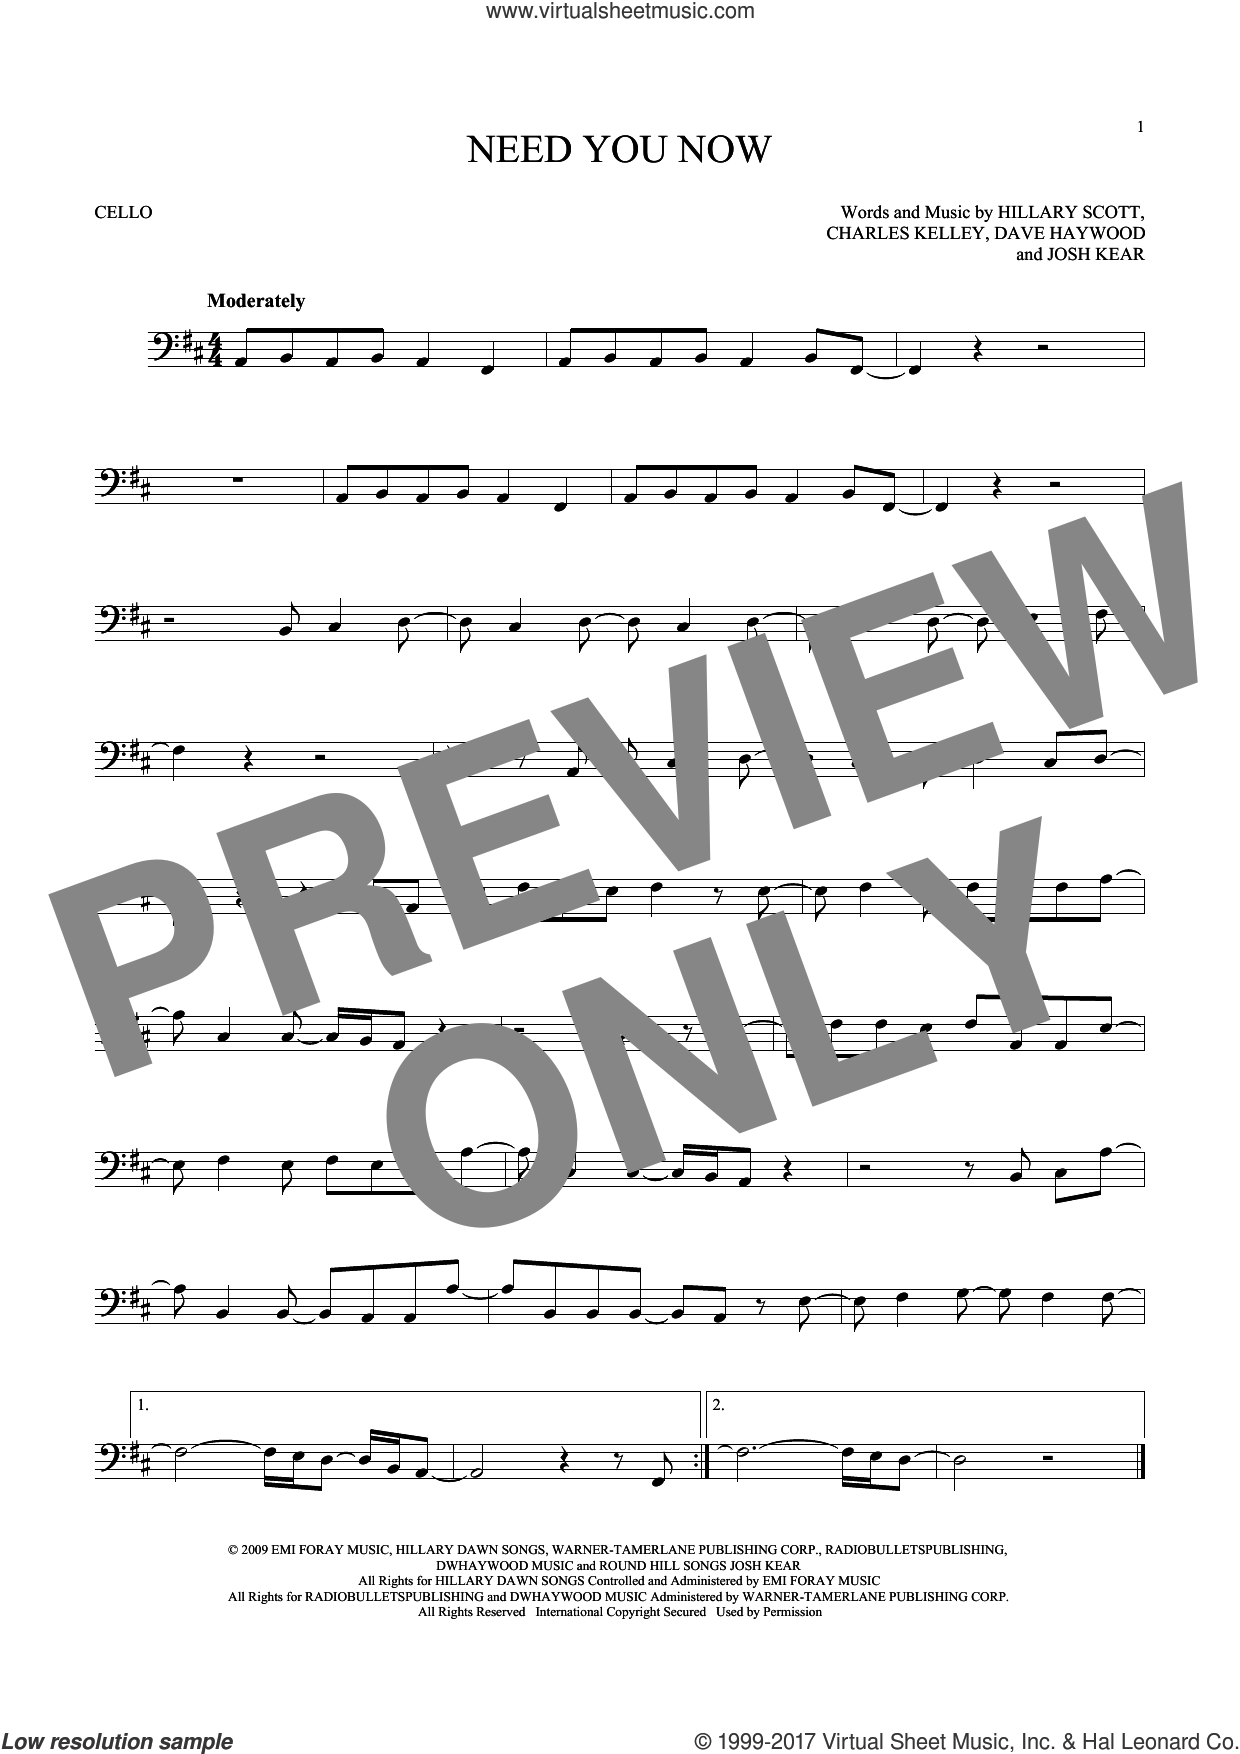 Need You Now sheet music for cello solo by Lady Antebellum, Charles Kelley, Dave Haywood, Hillary Scott and Josh Kear, intermediate skill level